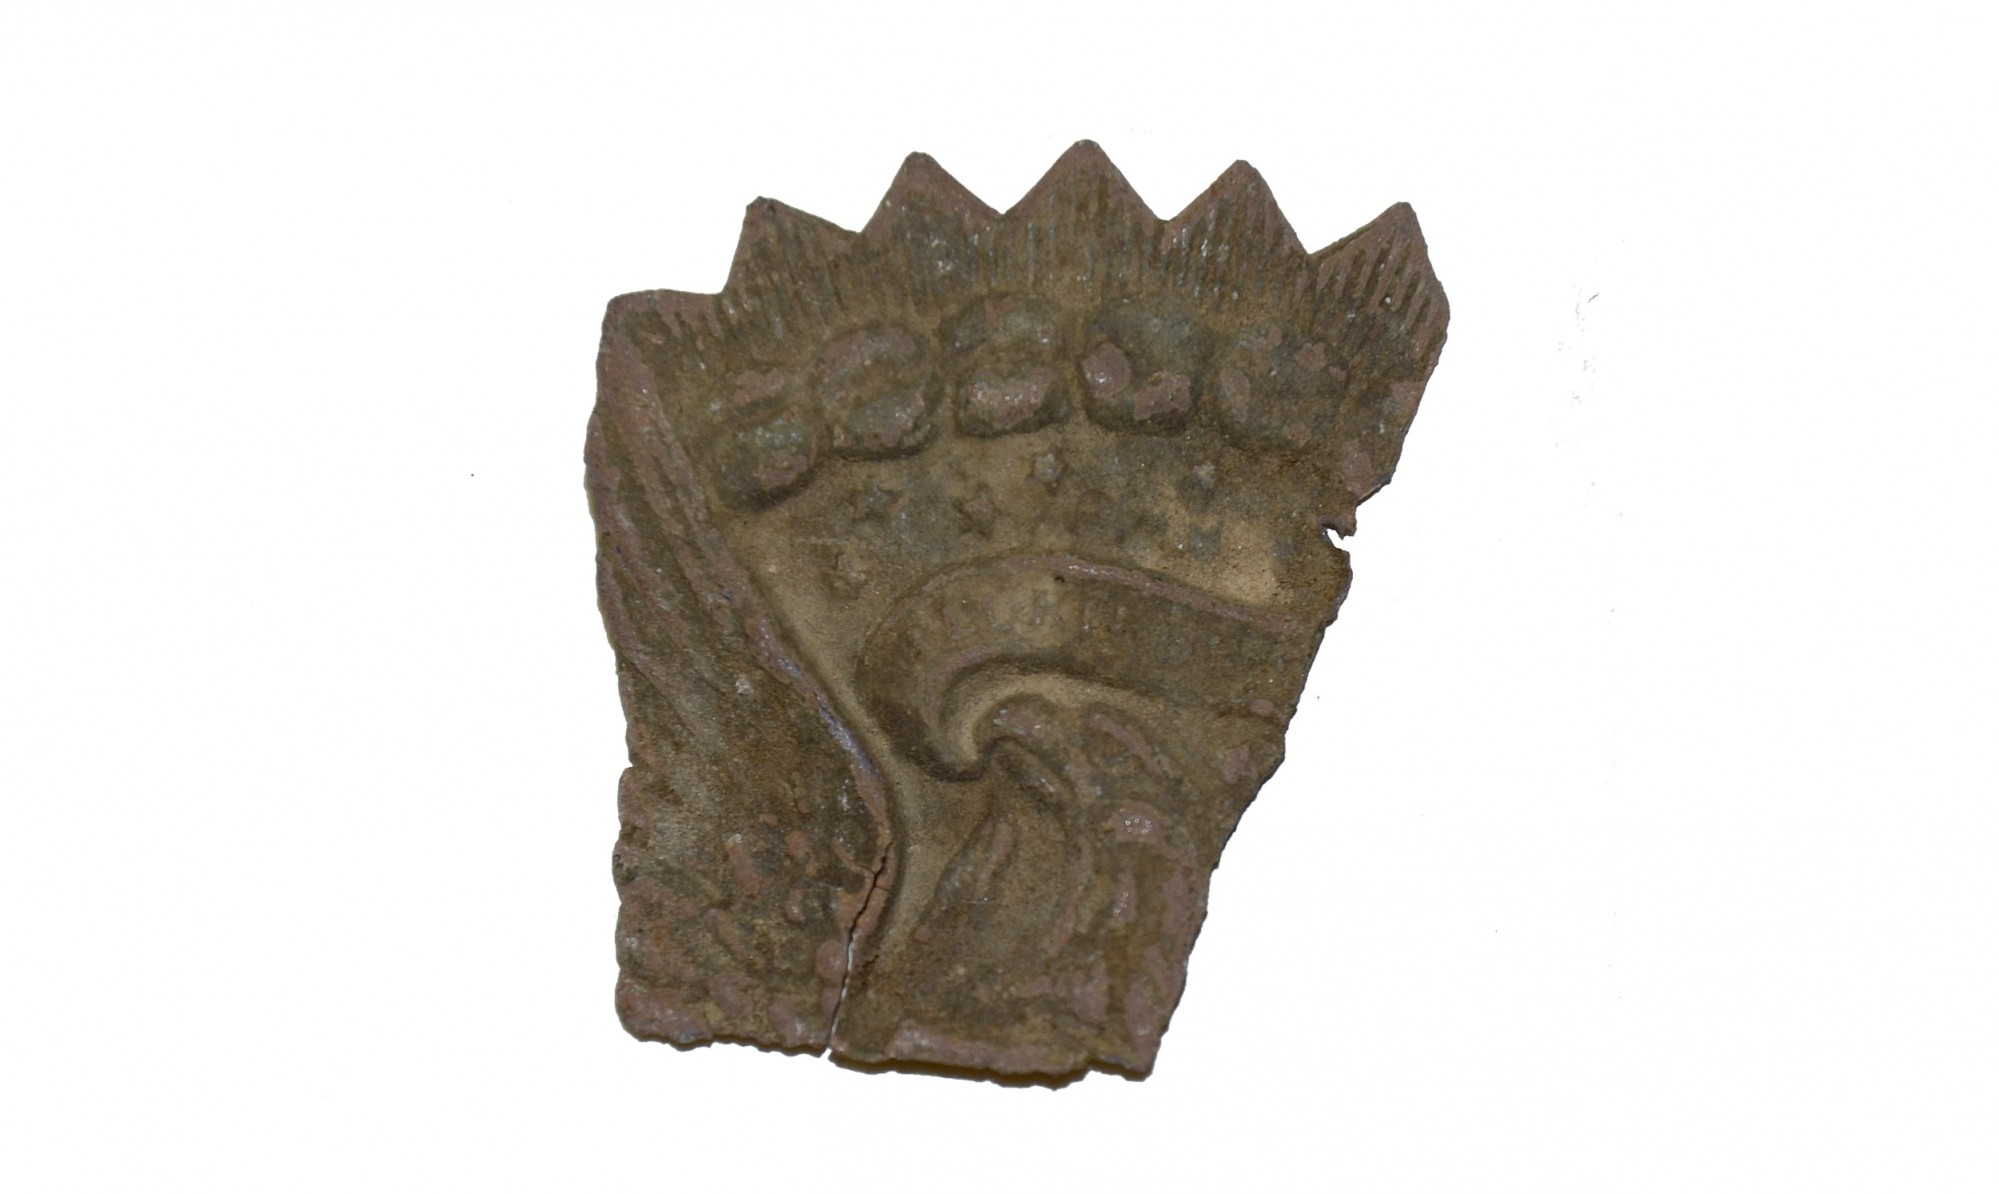 SECTION OF JEFF DAVIS HAT INSIGNIA RECOVERED AT THE SHERFY FARM, GETTYSBURG